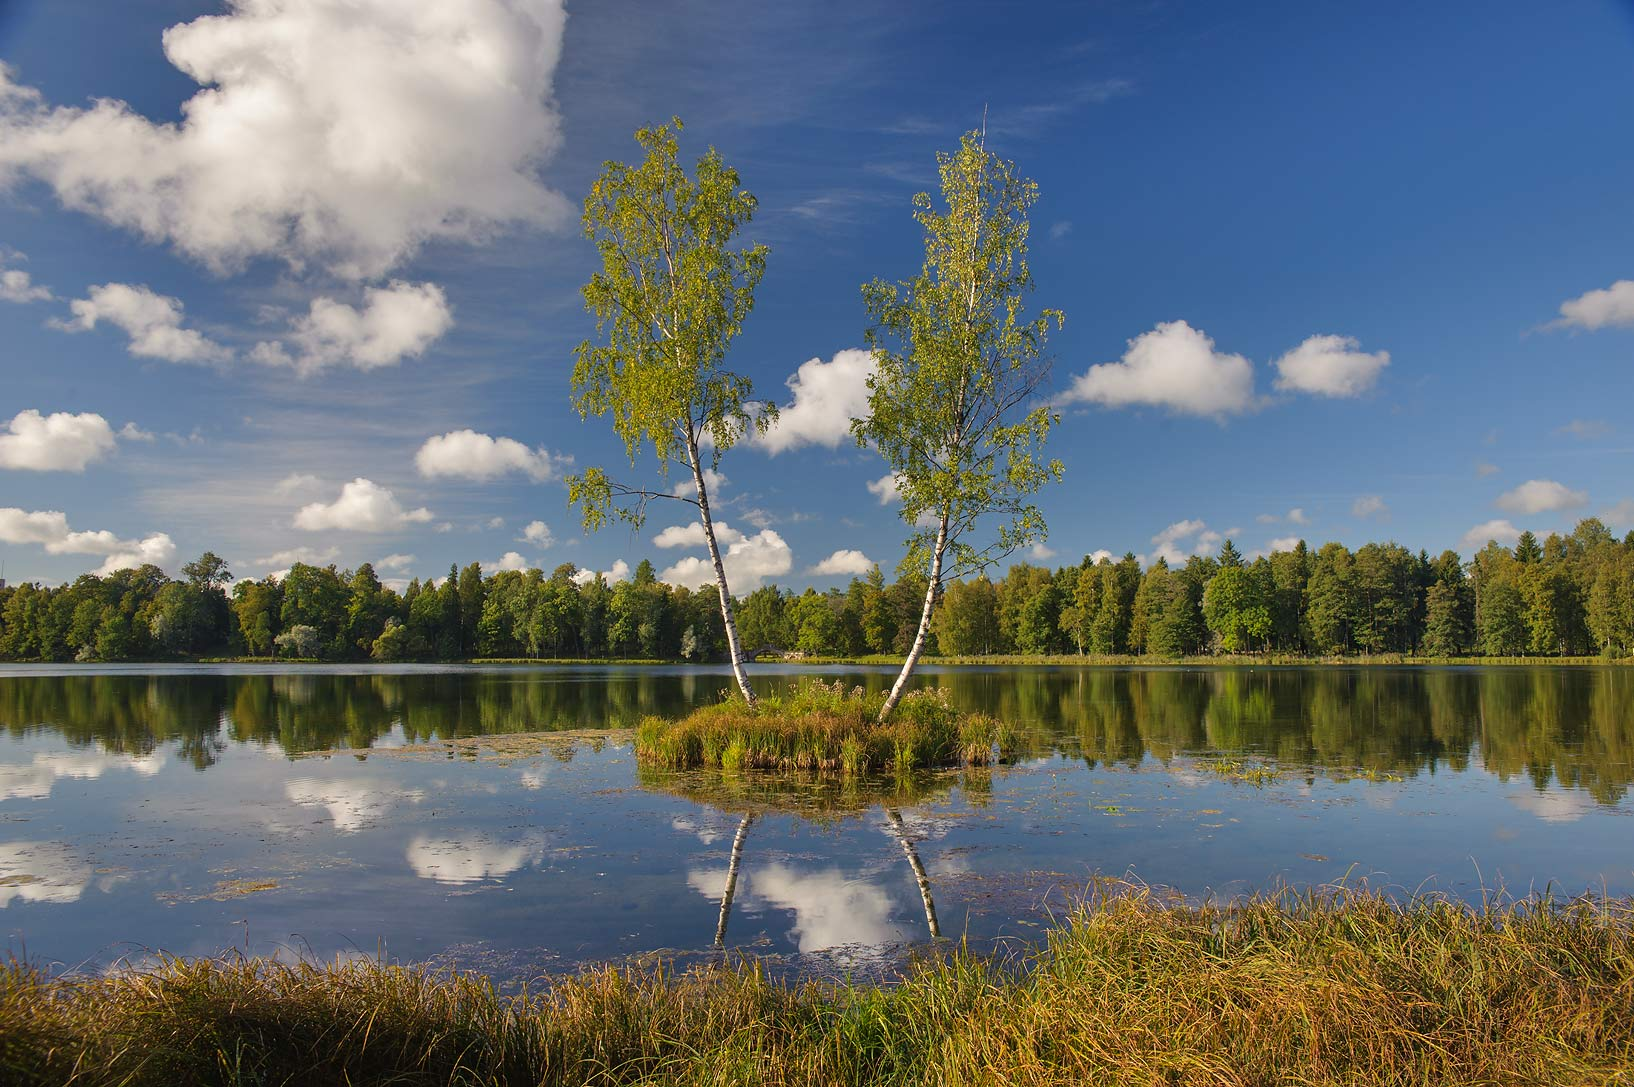 Birch Island in Beloe Lake in Gatchina Park. Gatchina, a suburb of St.Petersburg, Russia